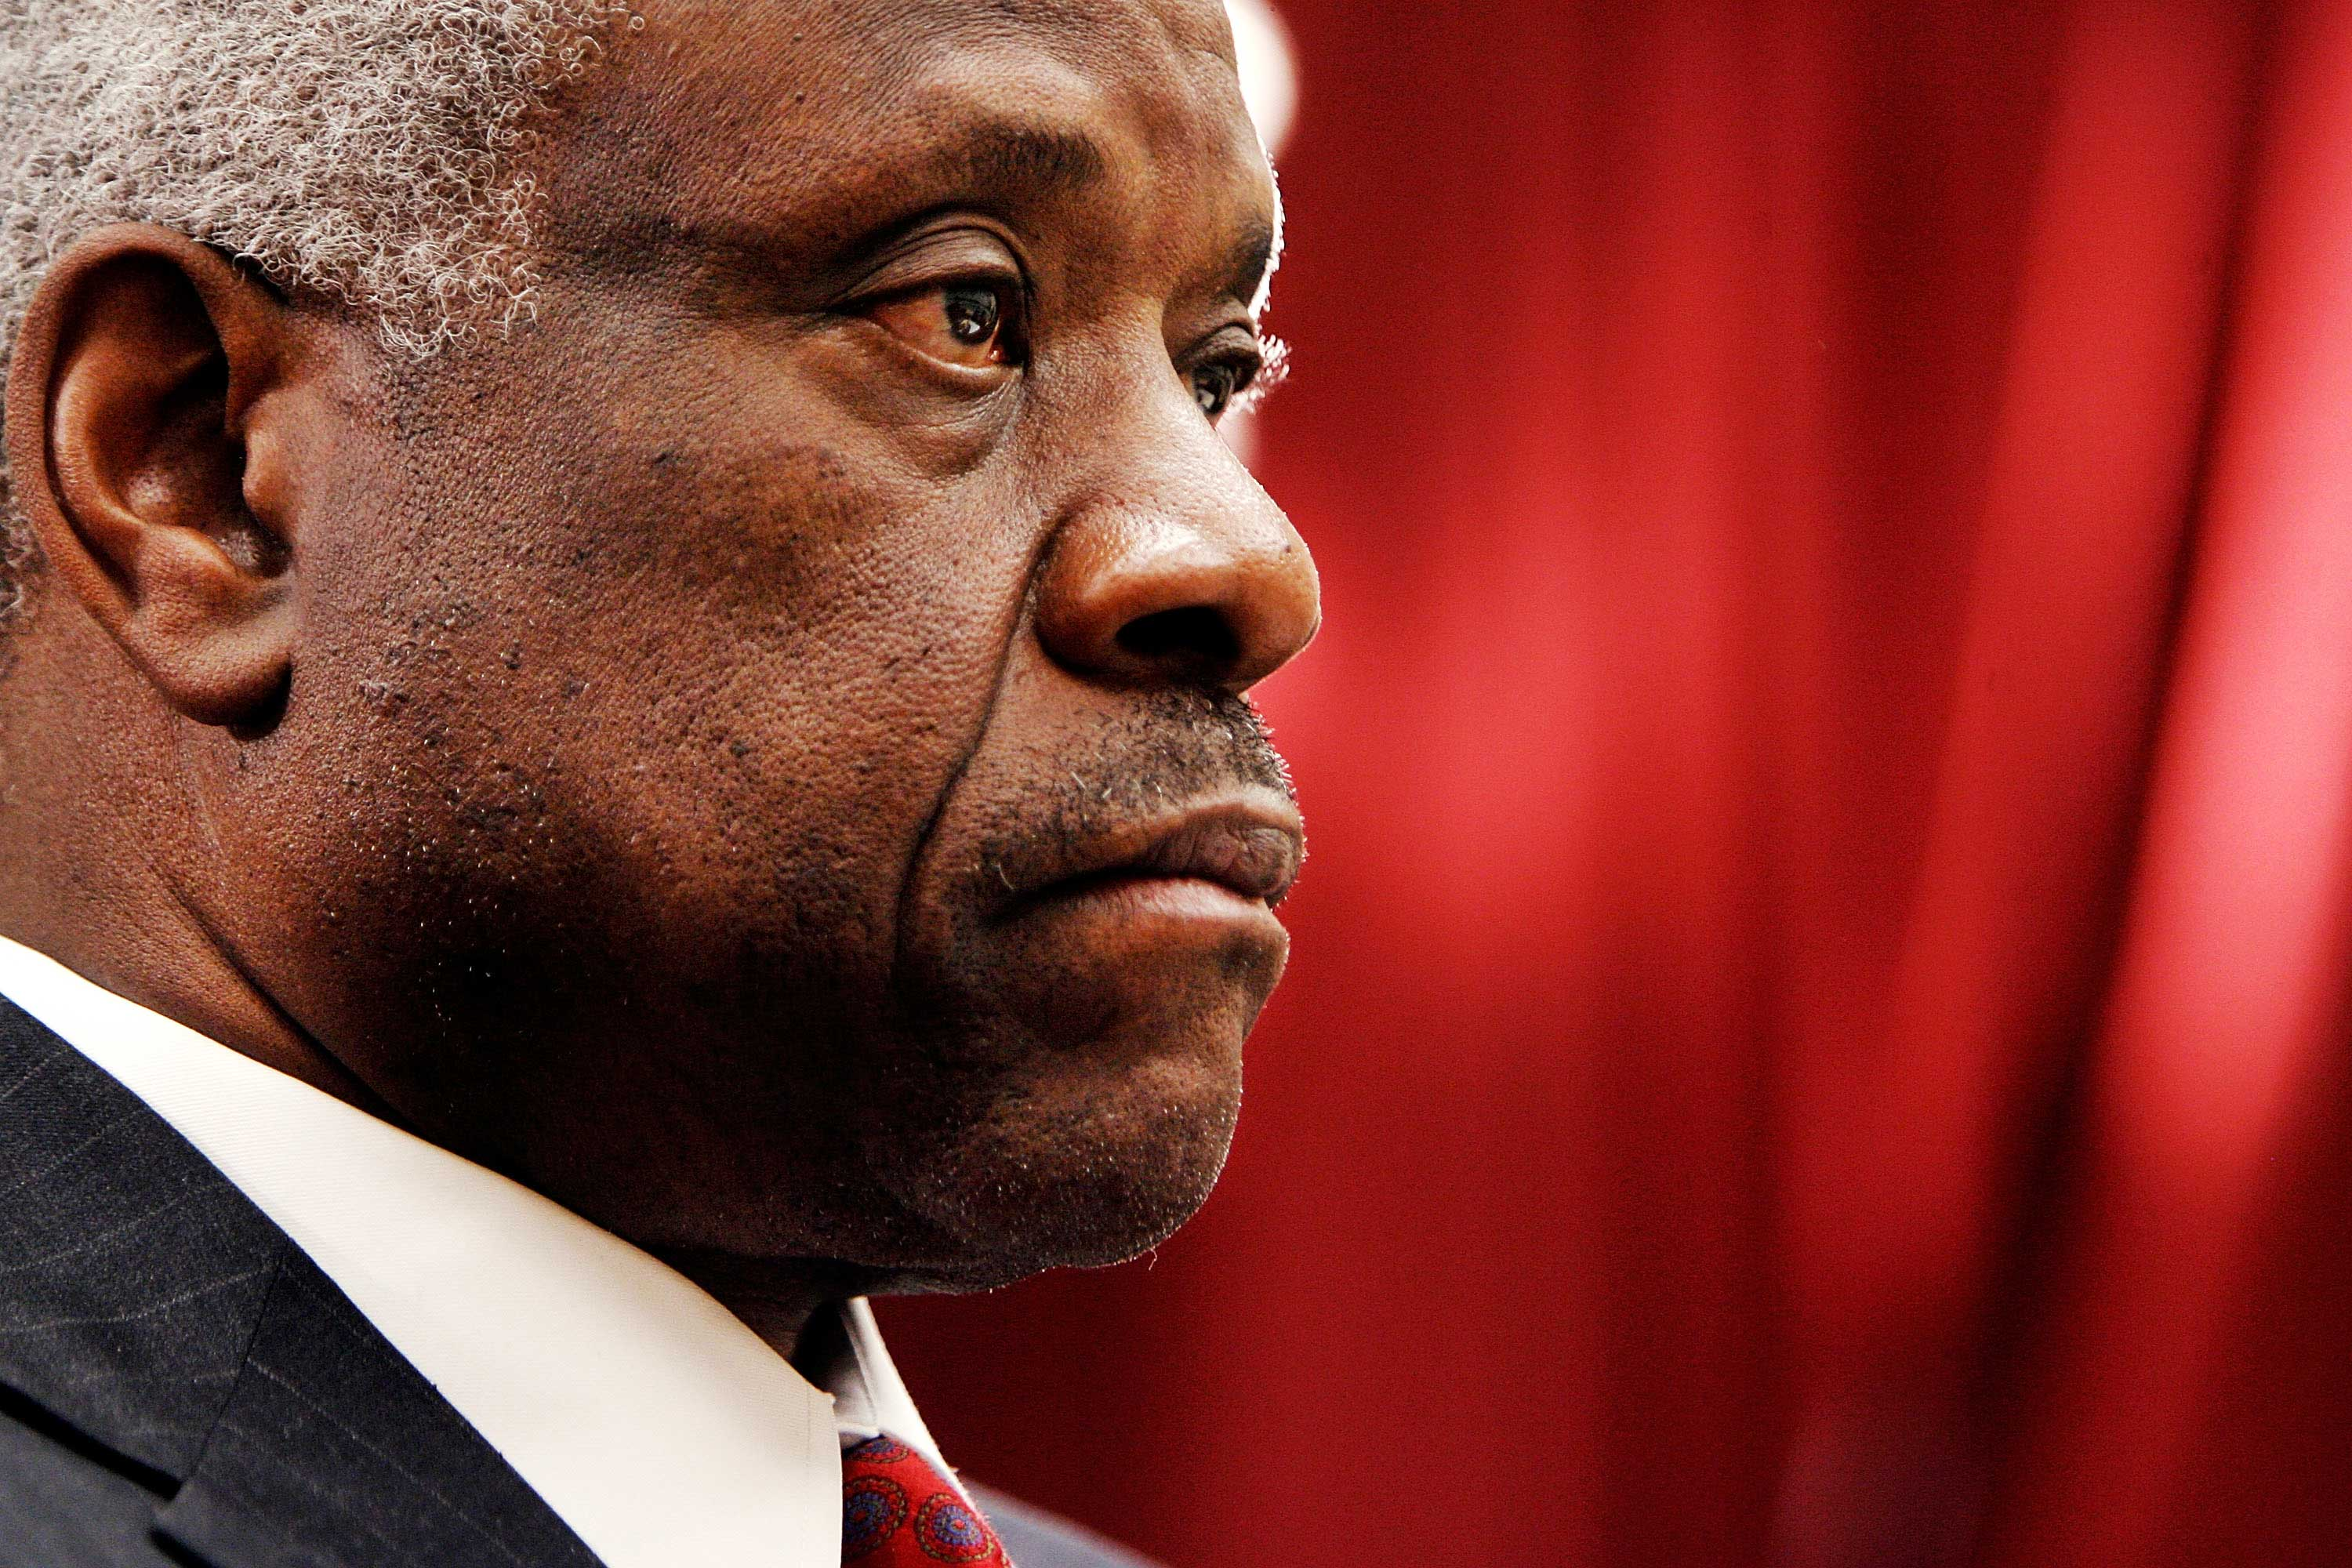 Supreme Court Justice Clarence Thomas testifies before the House Financial Services and General Government Subcommittee in Washington, DC on March 13, 2008.